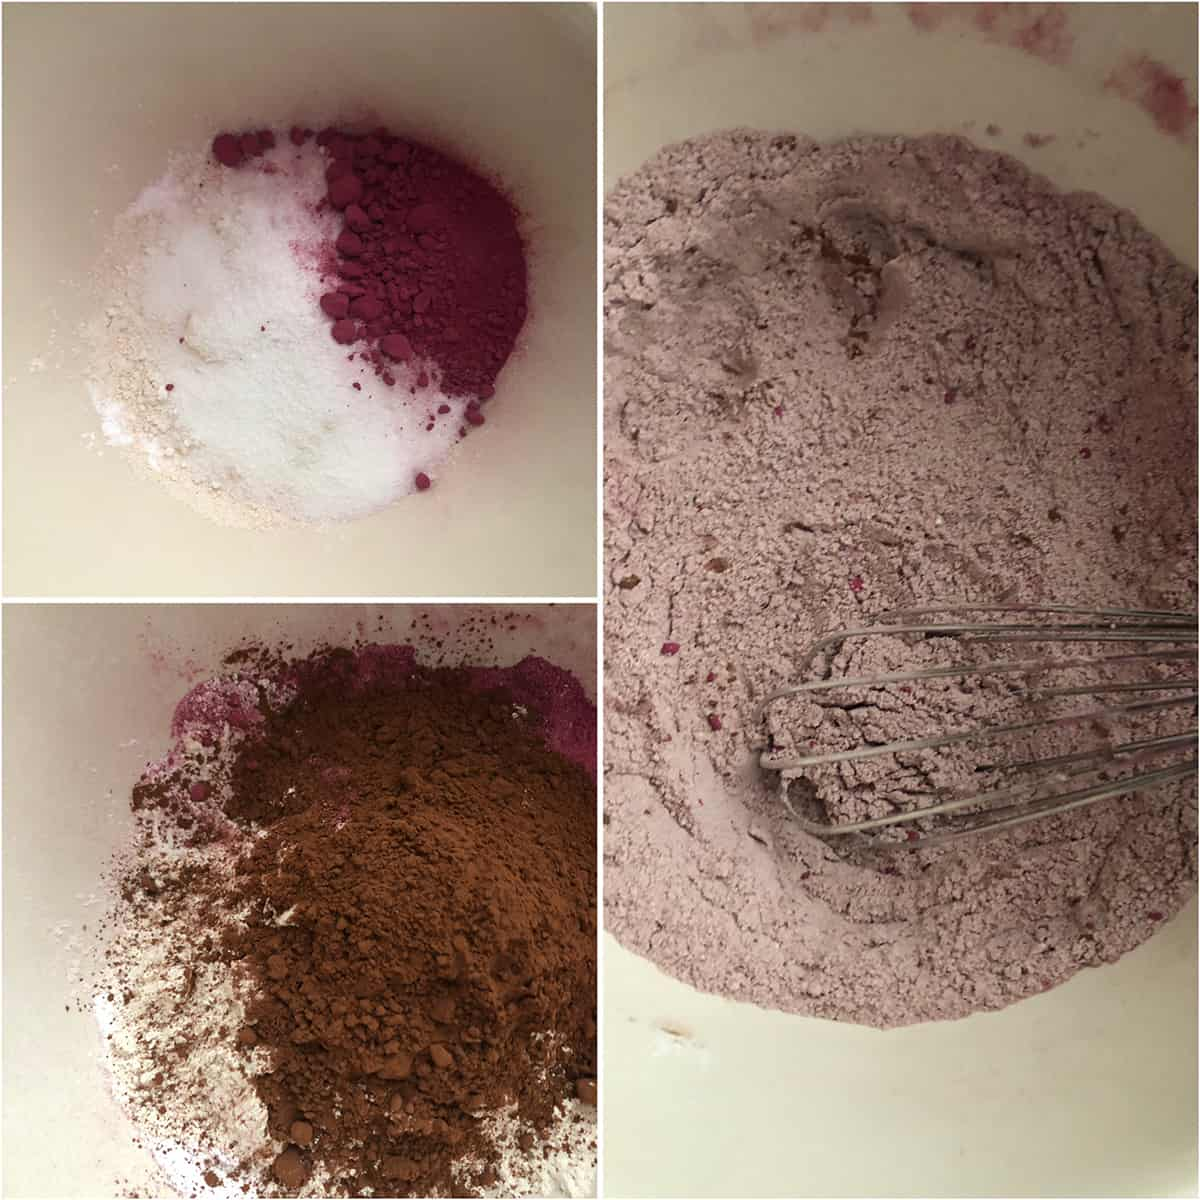 Dry ingredients being added to a bowl.